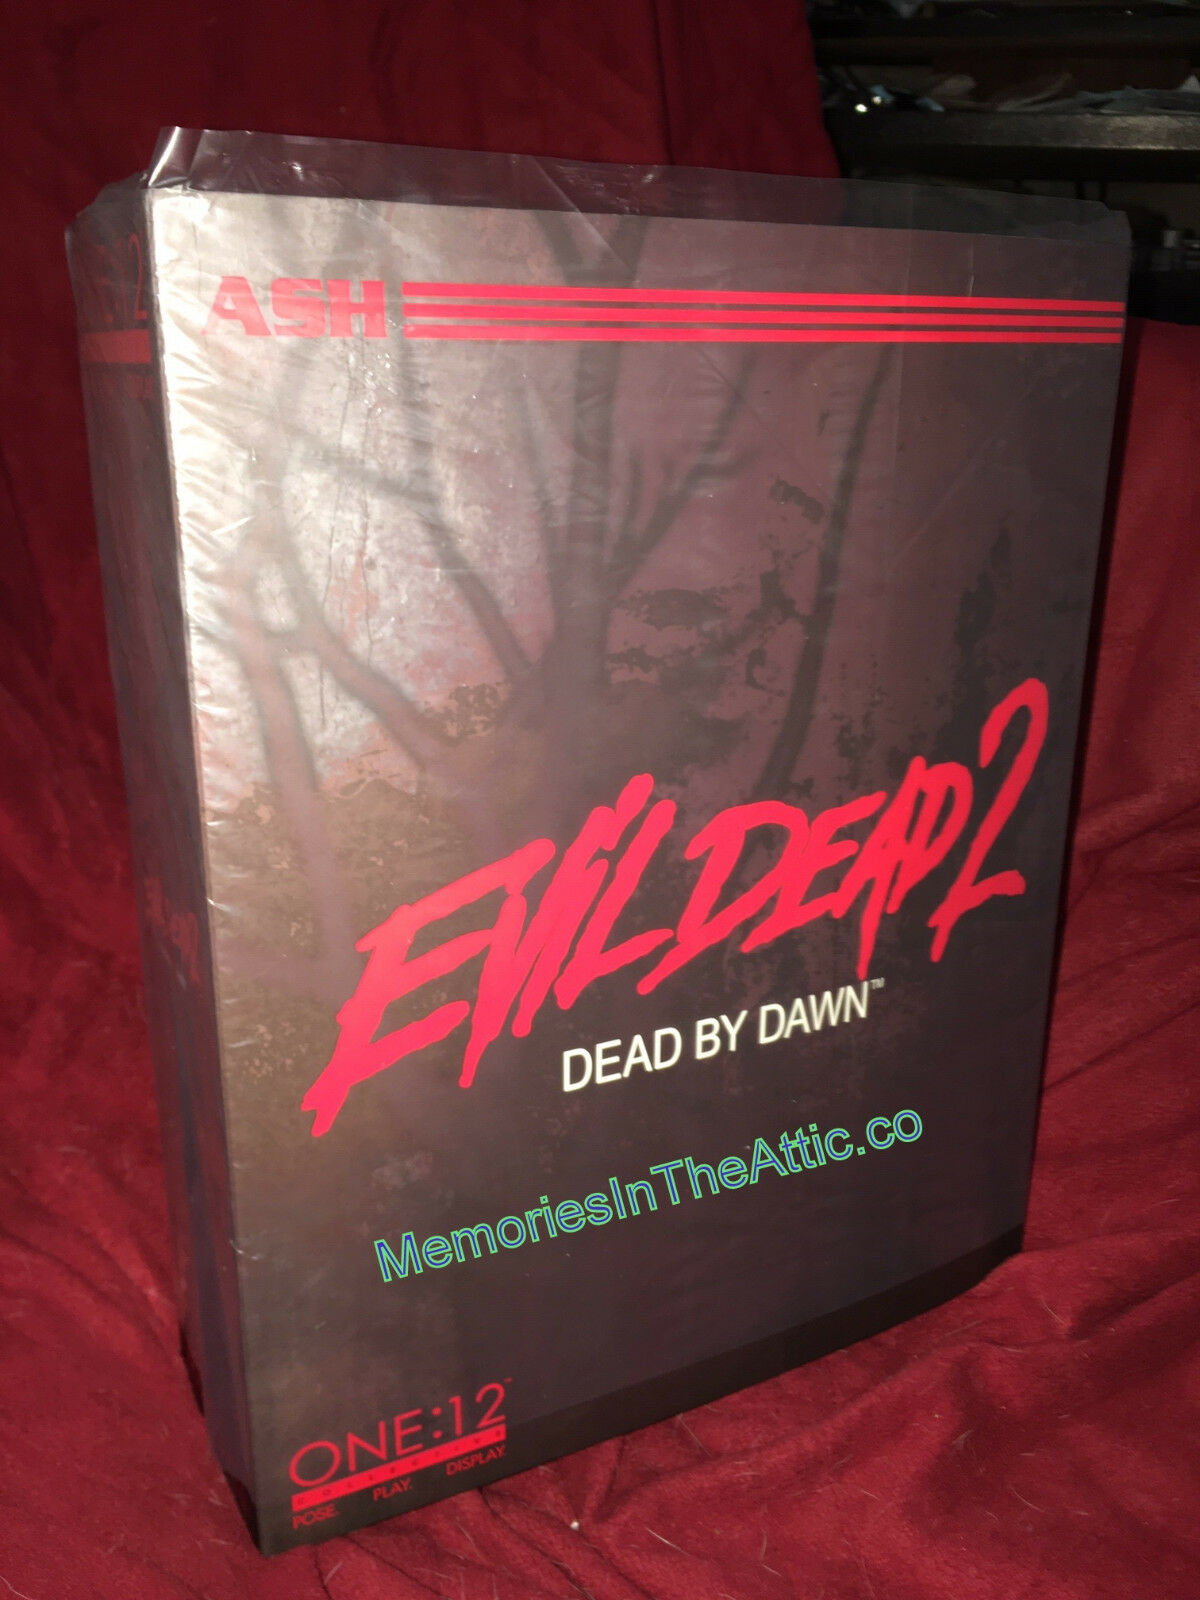 Mezco Toyz ONE 12 COLLECTIVE Ash Evil Dead 2 Army Of Darkness Action Figure Book